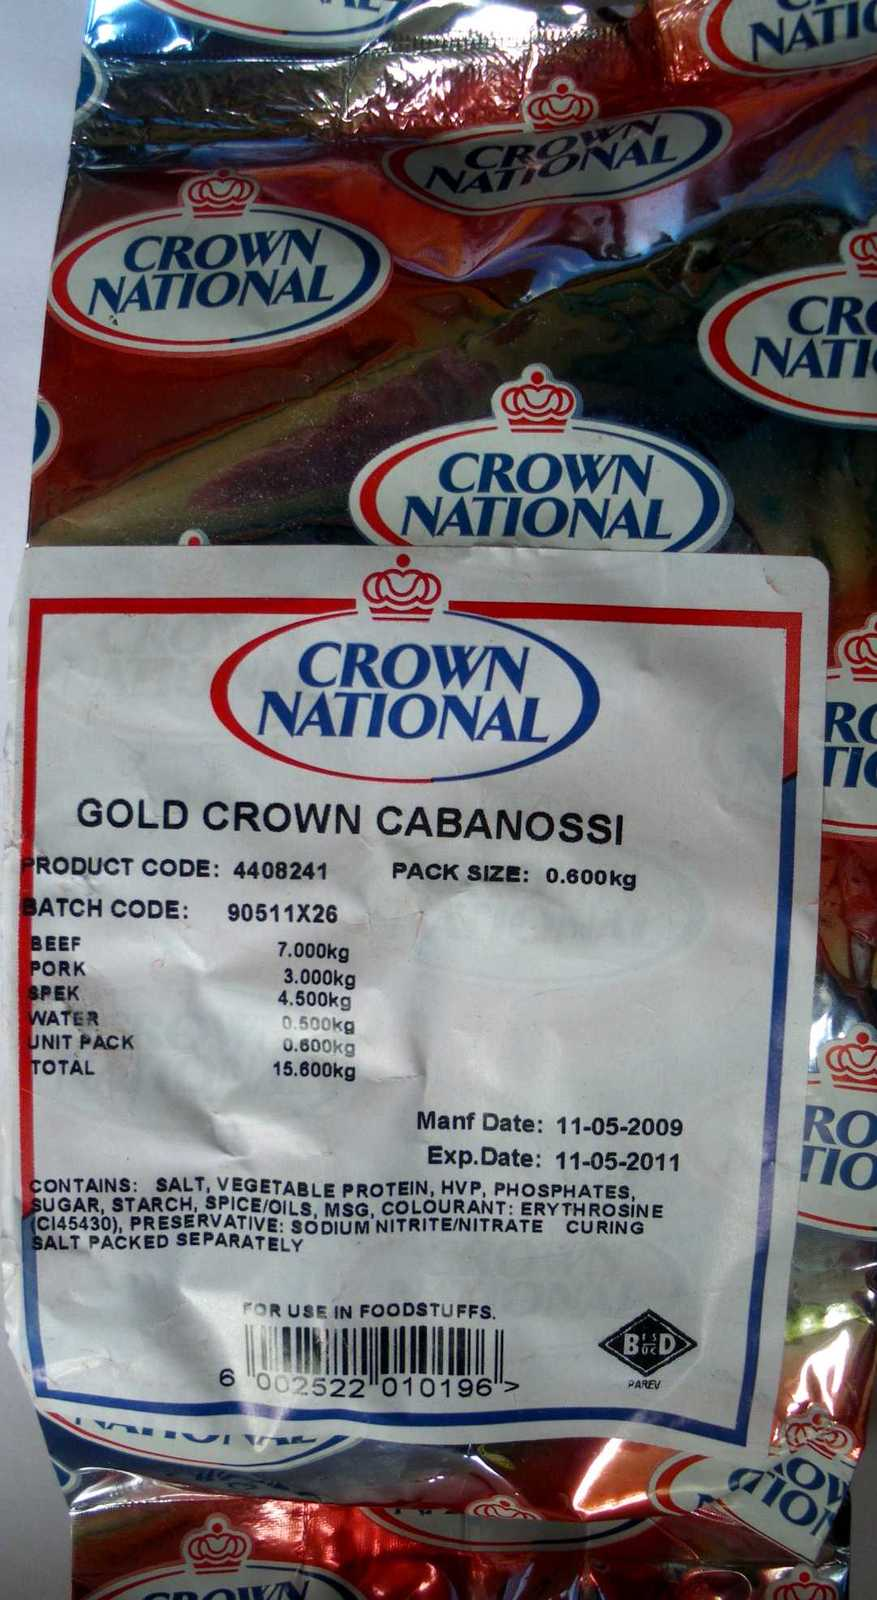 Crown National Cabanossi Gold Crown Seasoning 600g